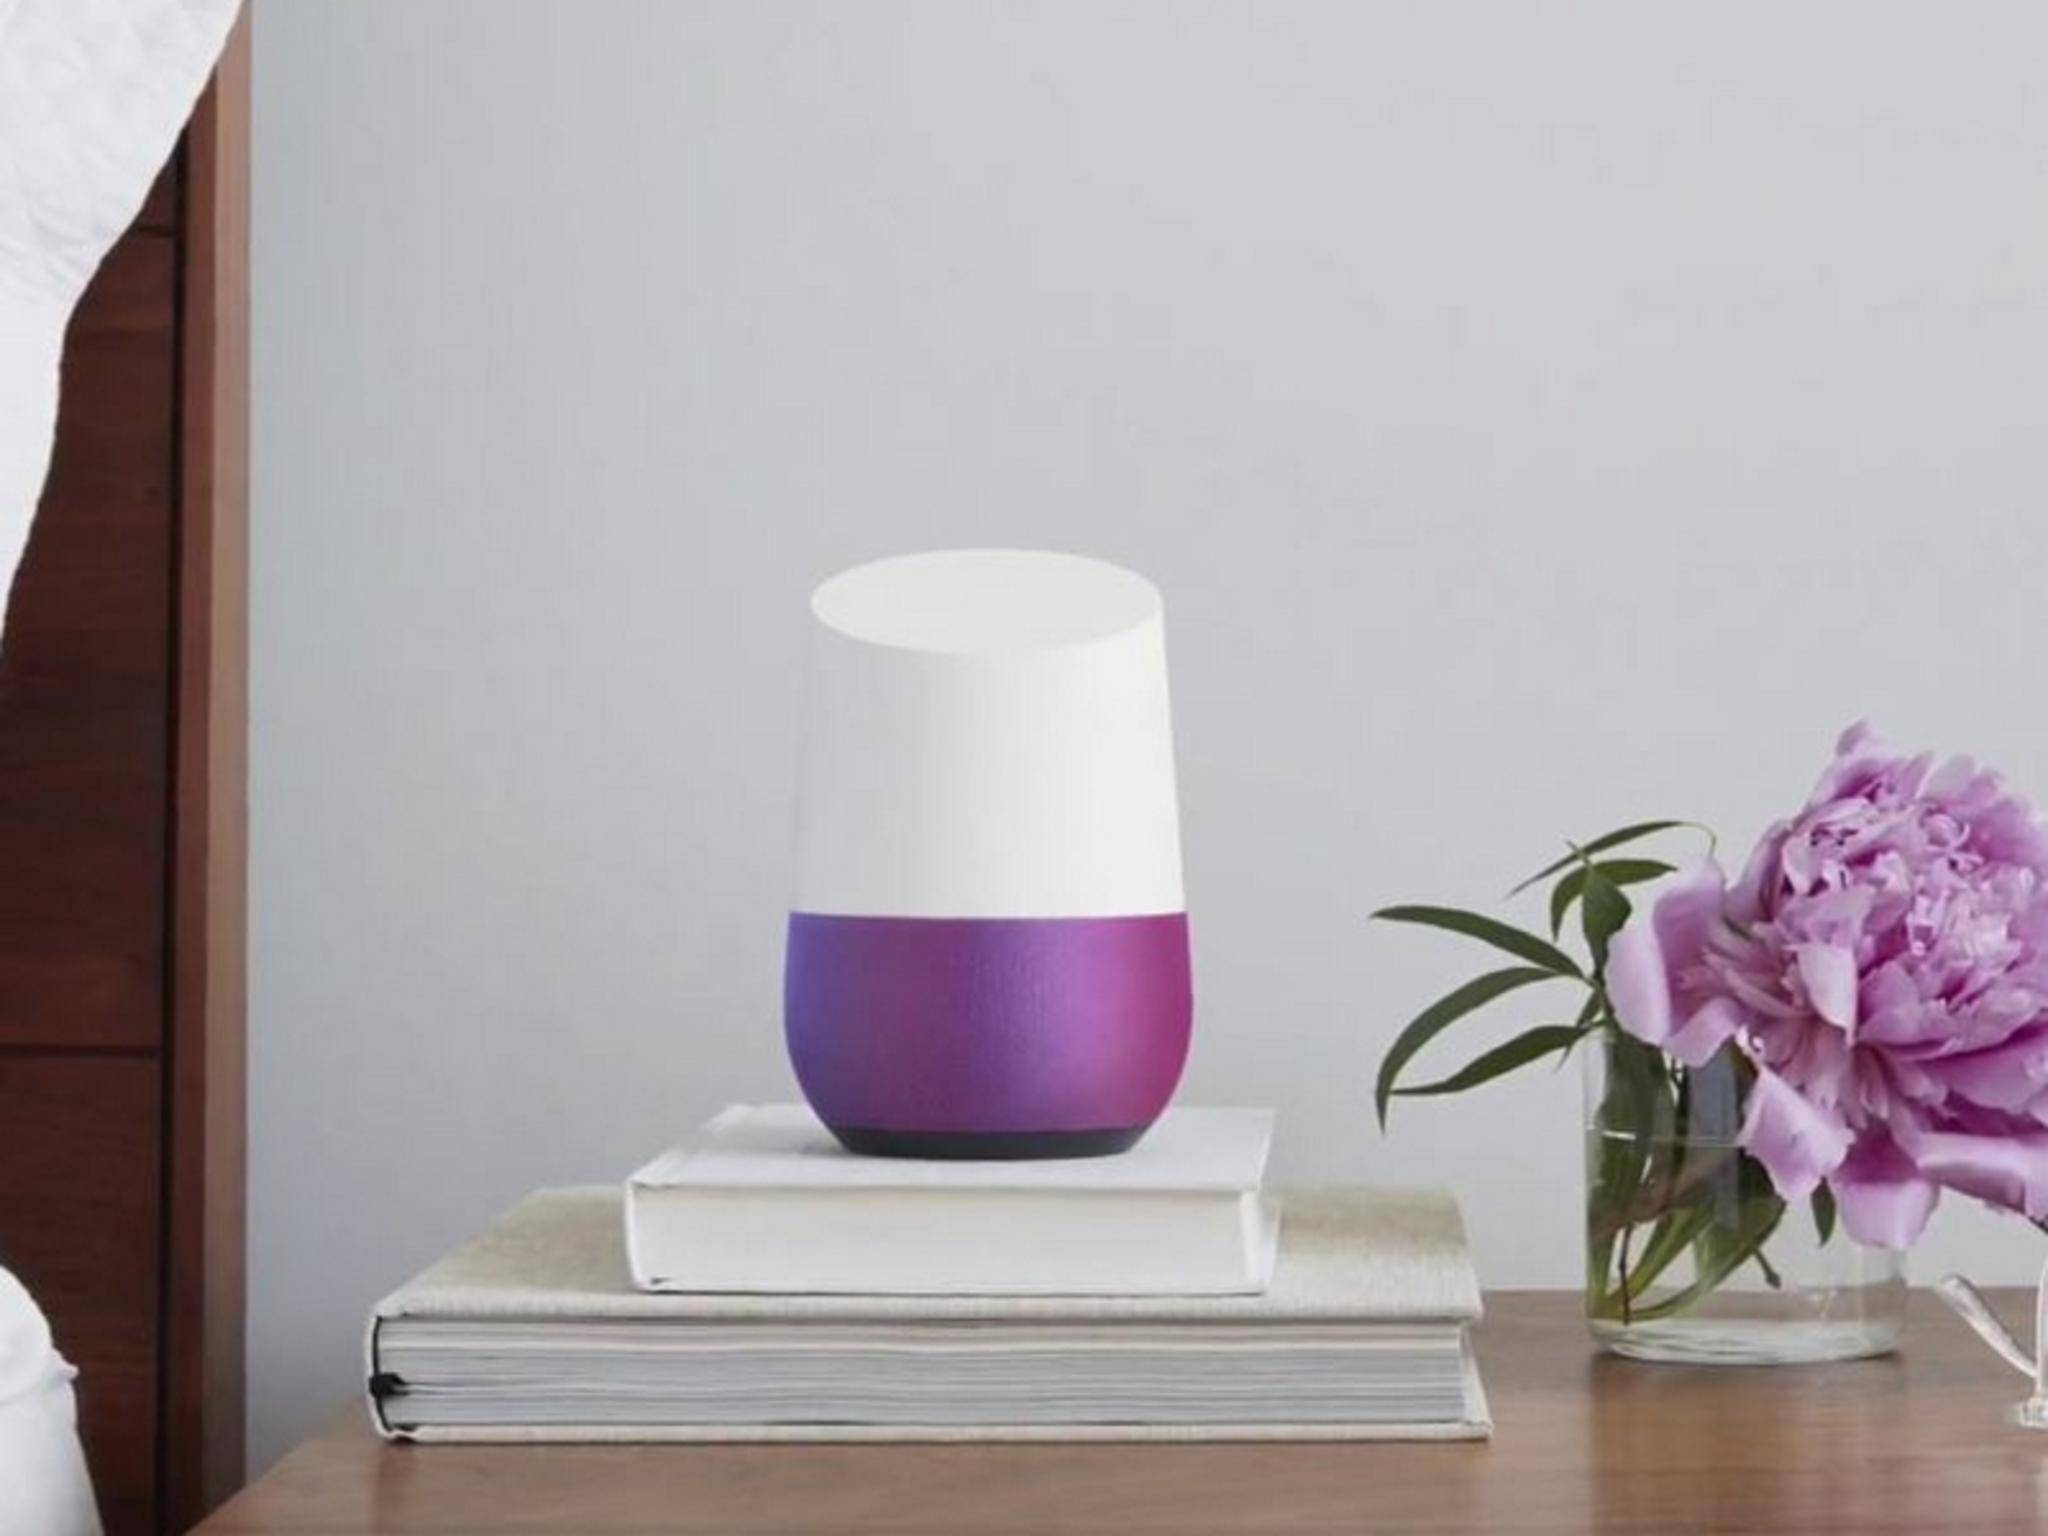 Google Home ist Googles intelligentes Gadget für das Smart Home.